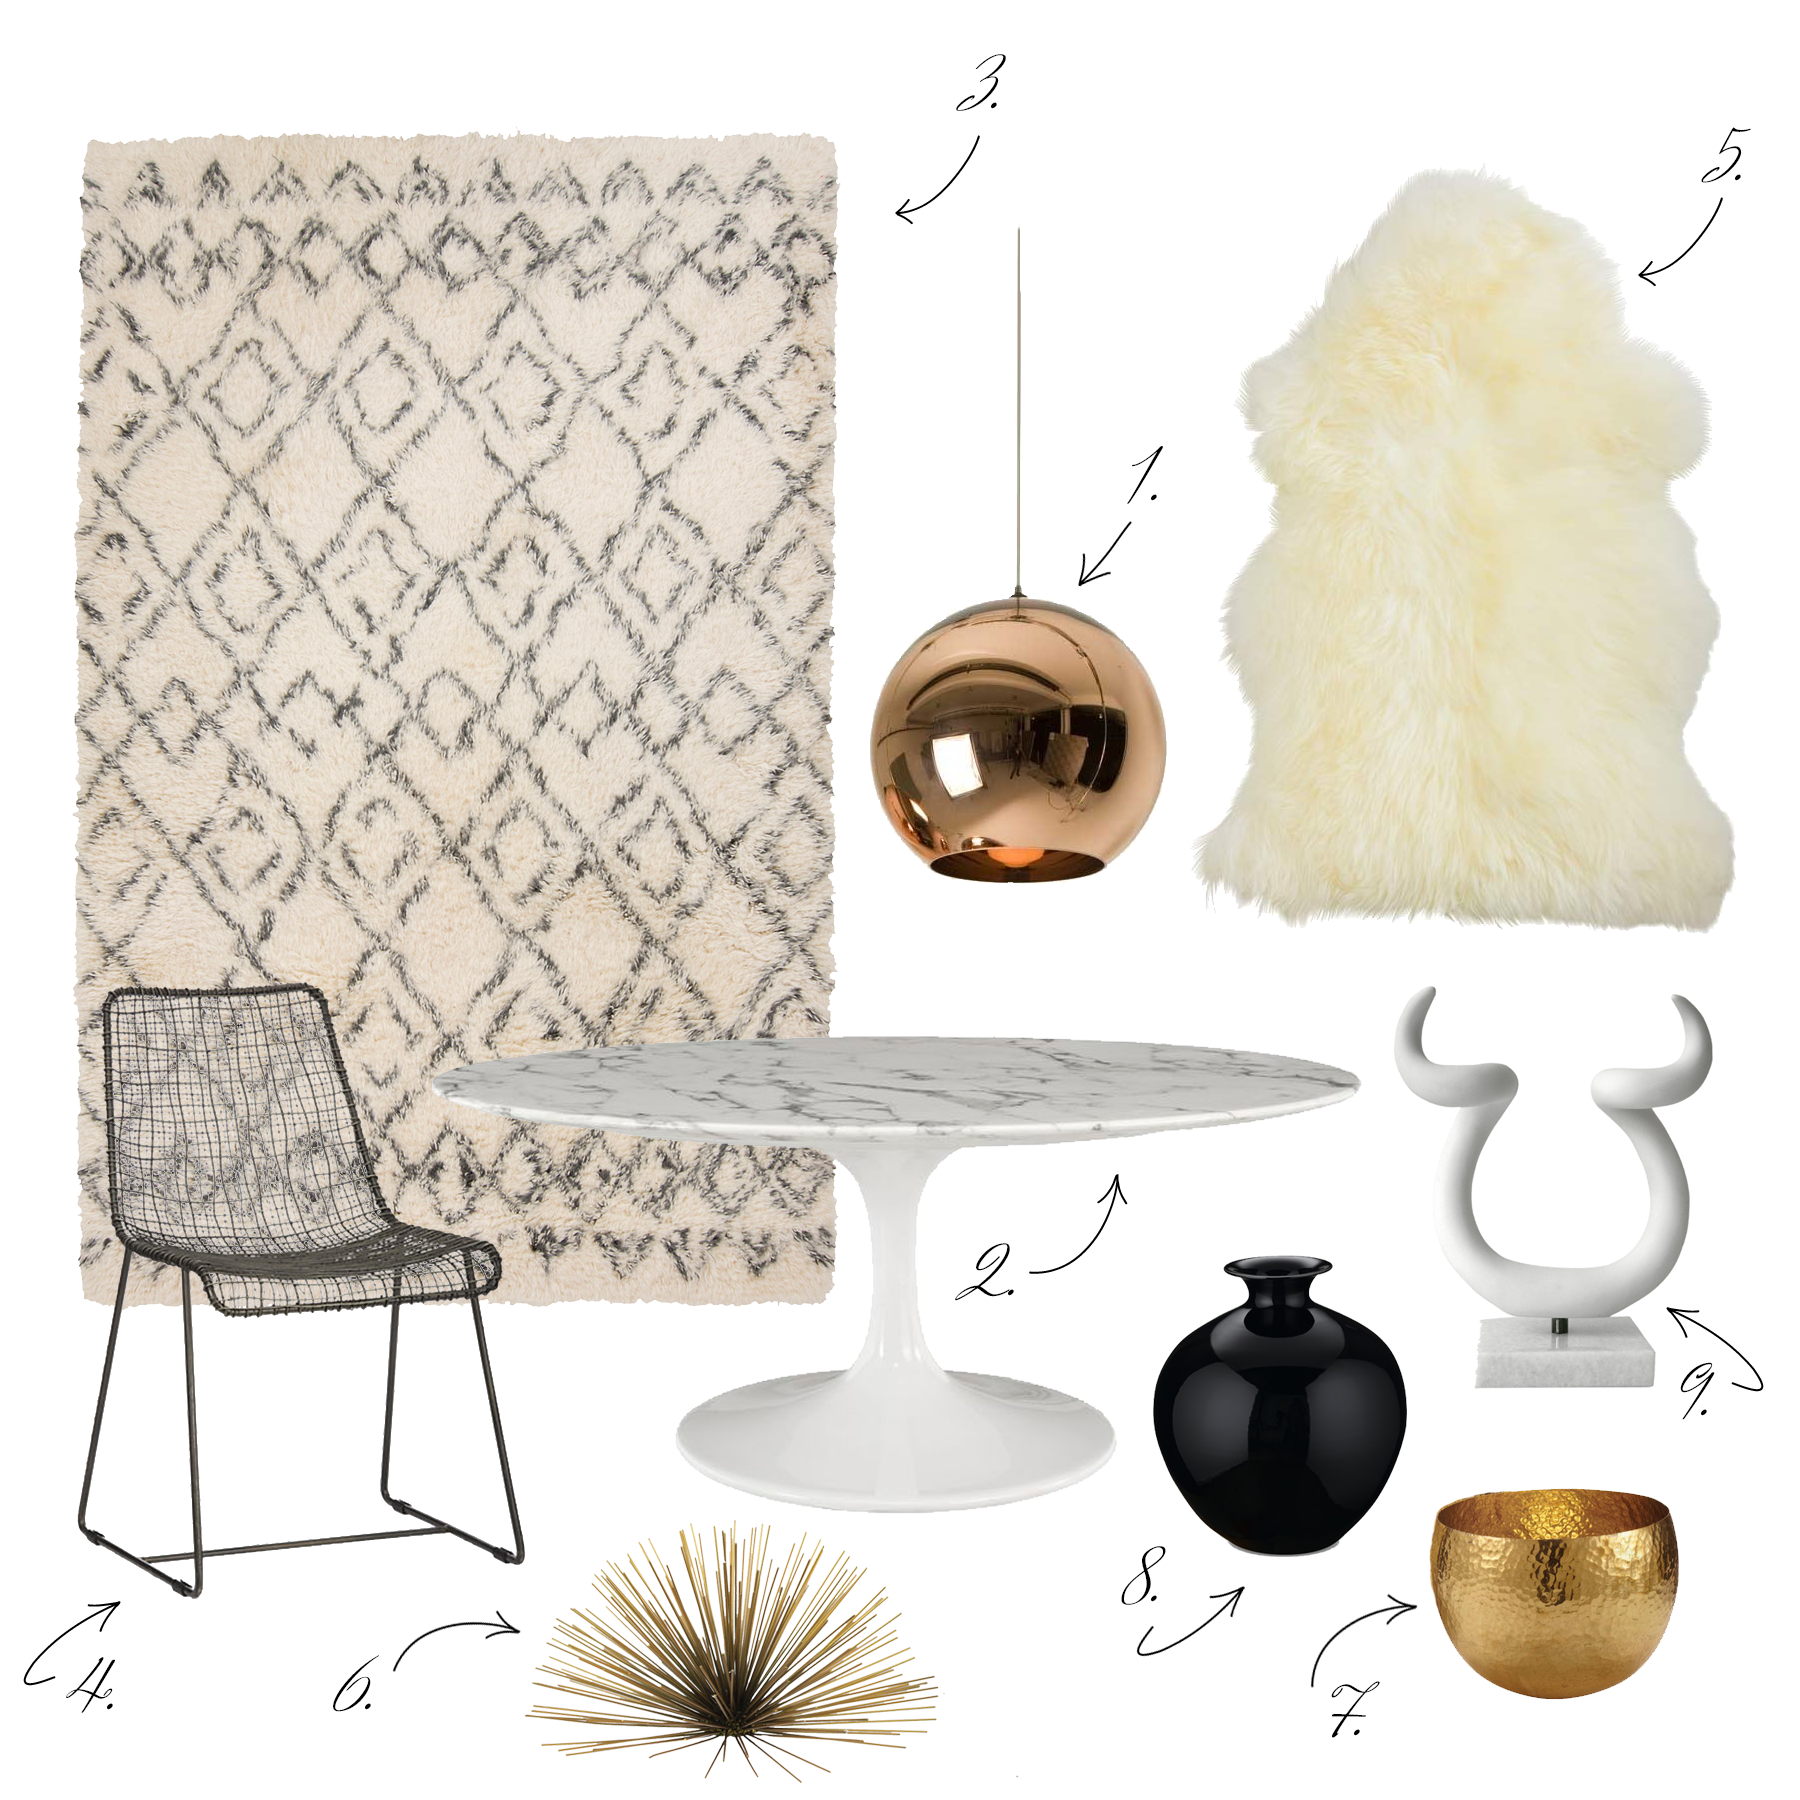 1.  Light    2.  Table    3.  Rug    4.  Chairs    5.  Throw    6.  Brass Urchin    7.  Brass Bowl    8.  Vase    9.  Horns